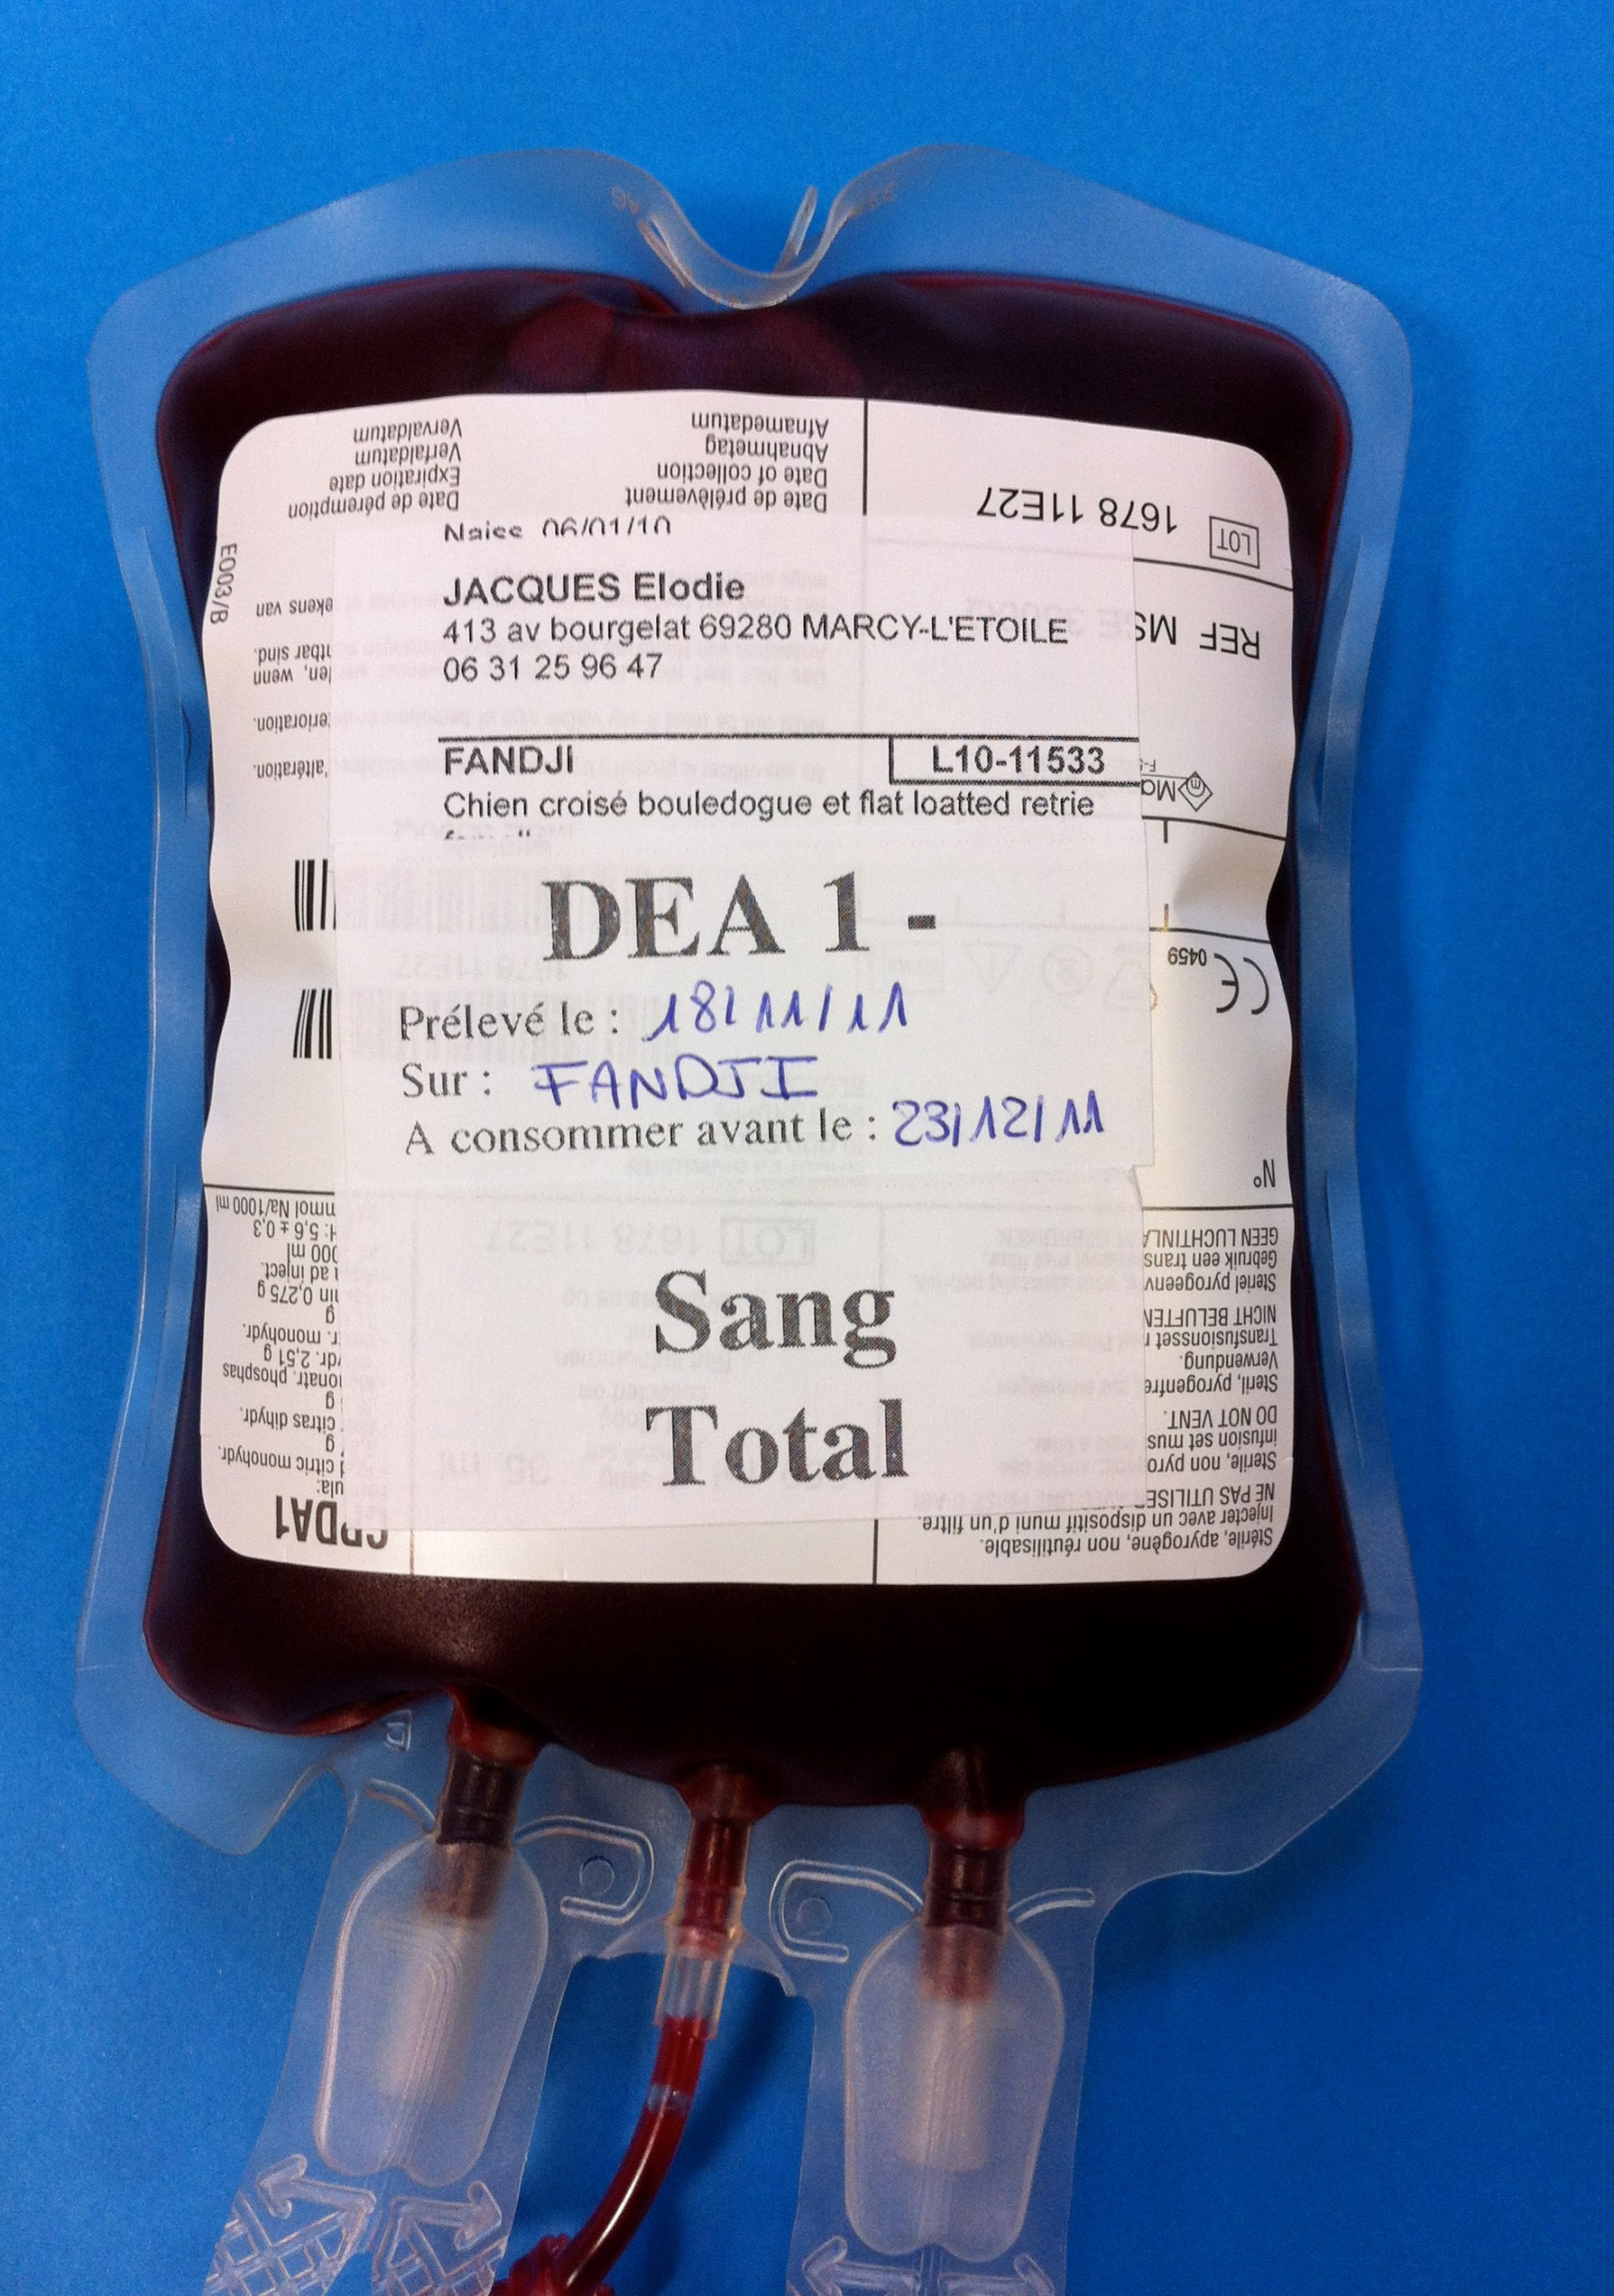 Blood products should be properly identified with blood type, donor's name, collection date, and expiration date.